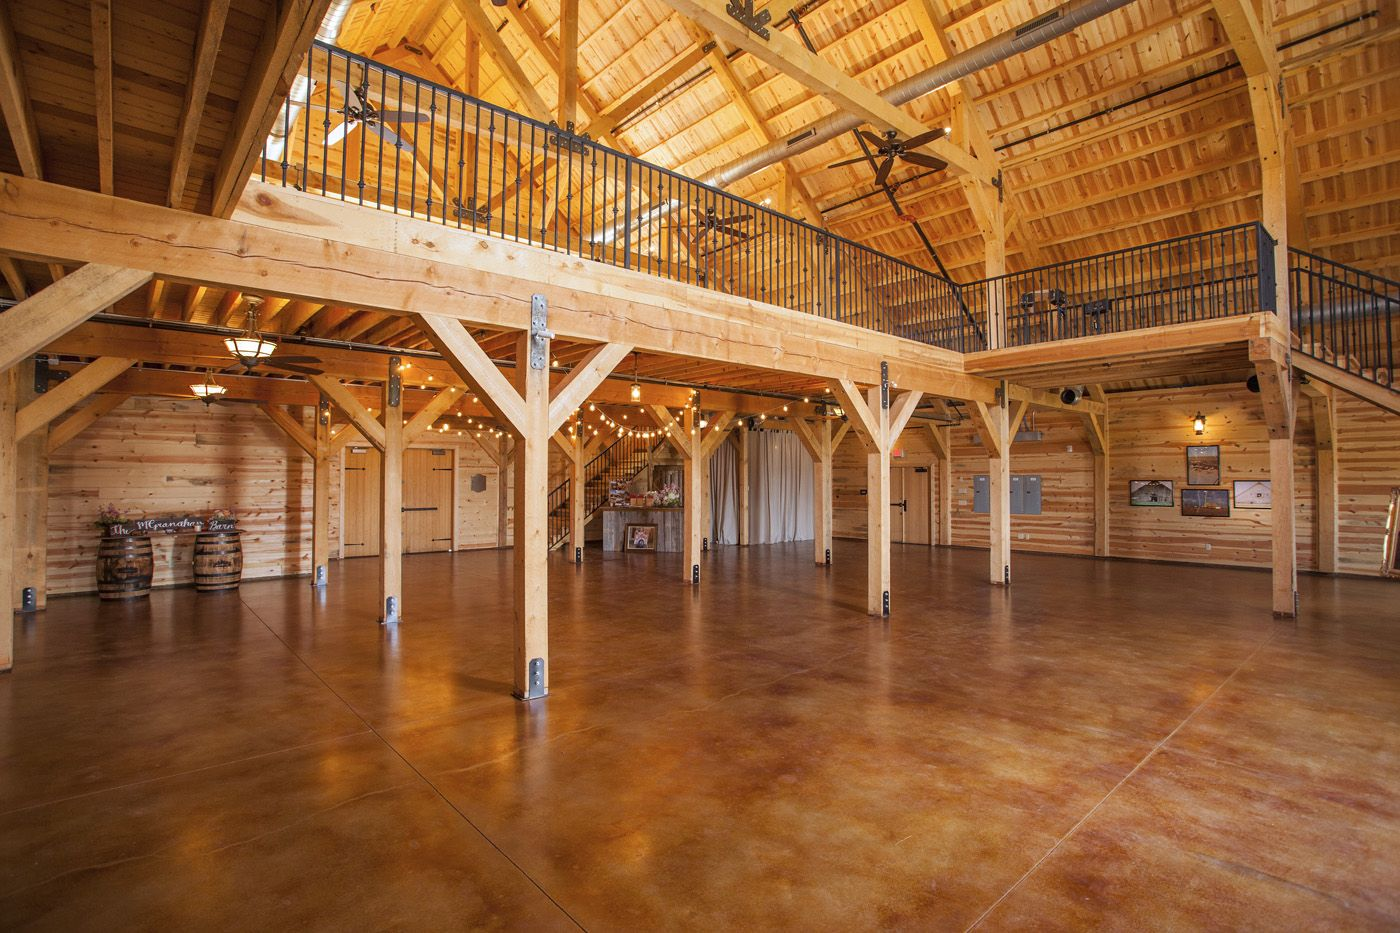 barn wedding barns venue pole beam event sandcreekpostandbeam party weddings kits country venues plans oosile creek reception receptions horse dream